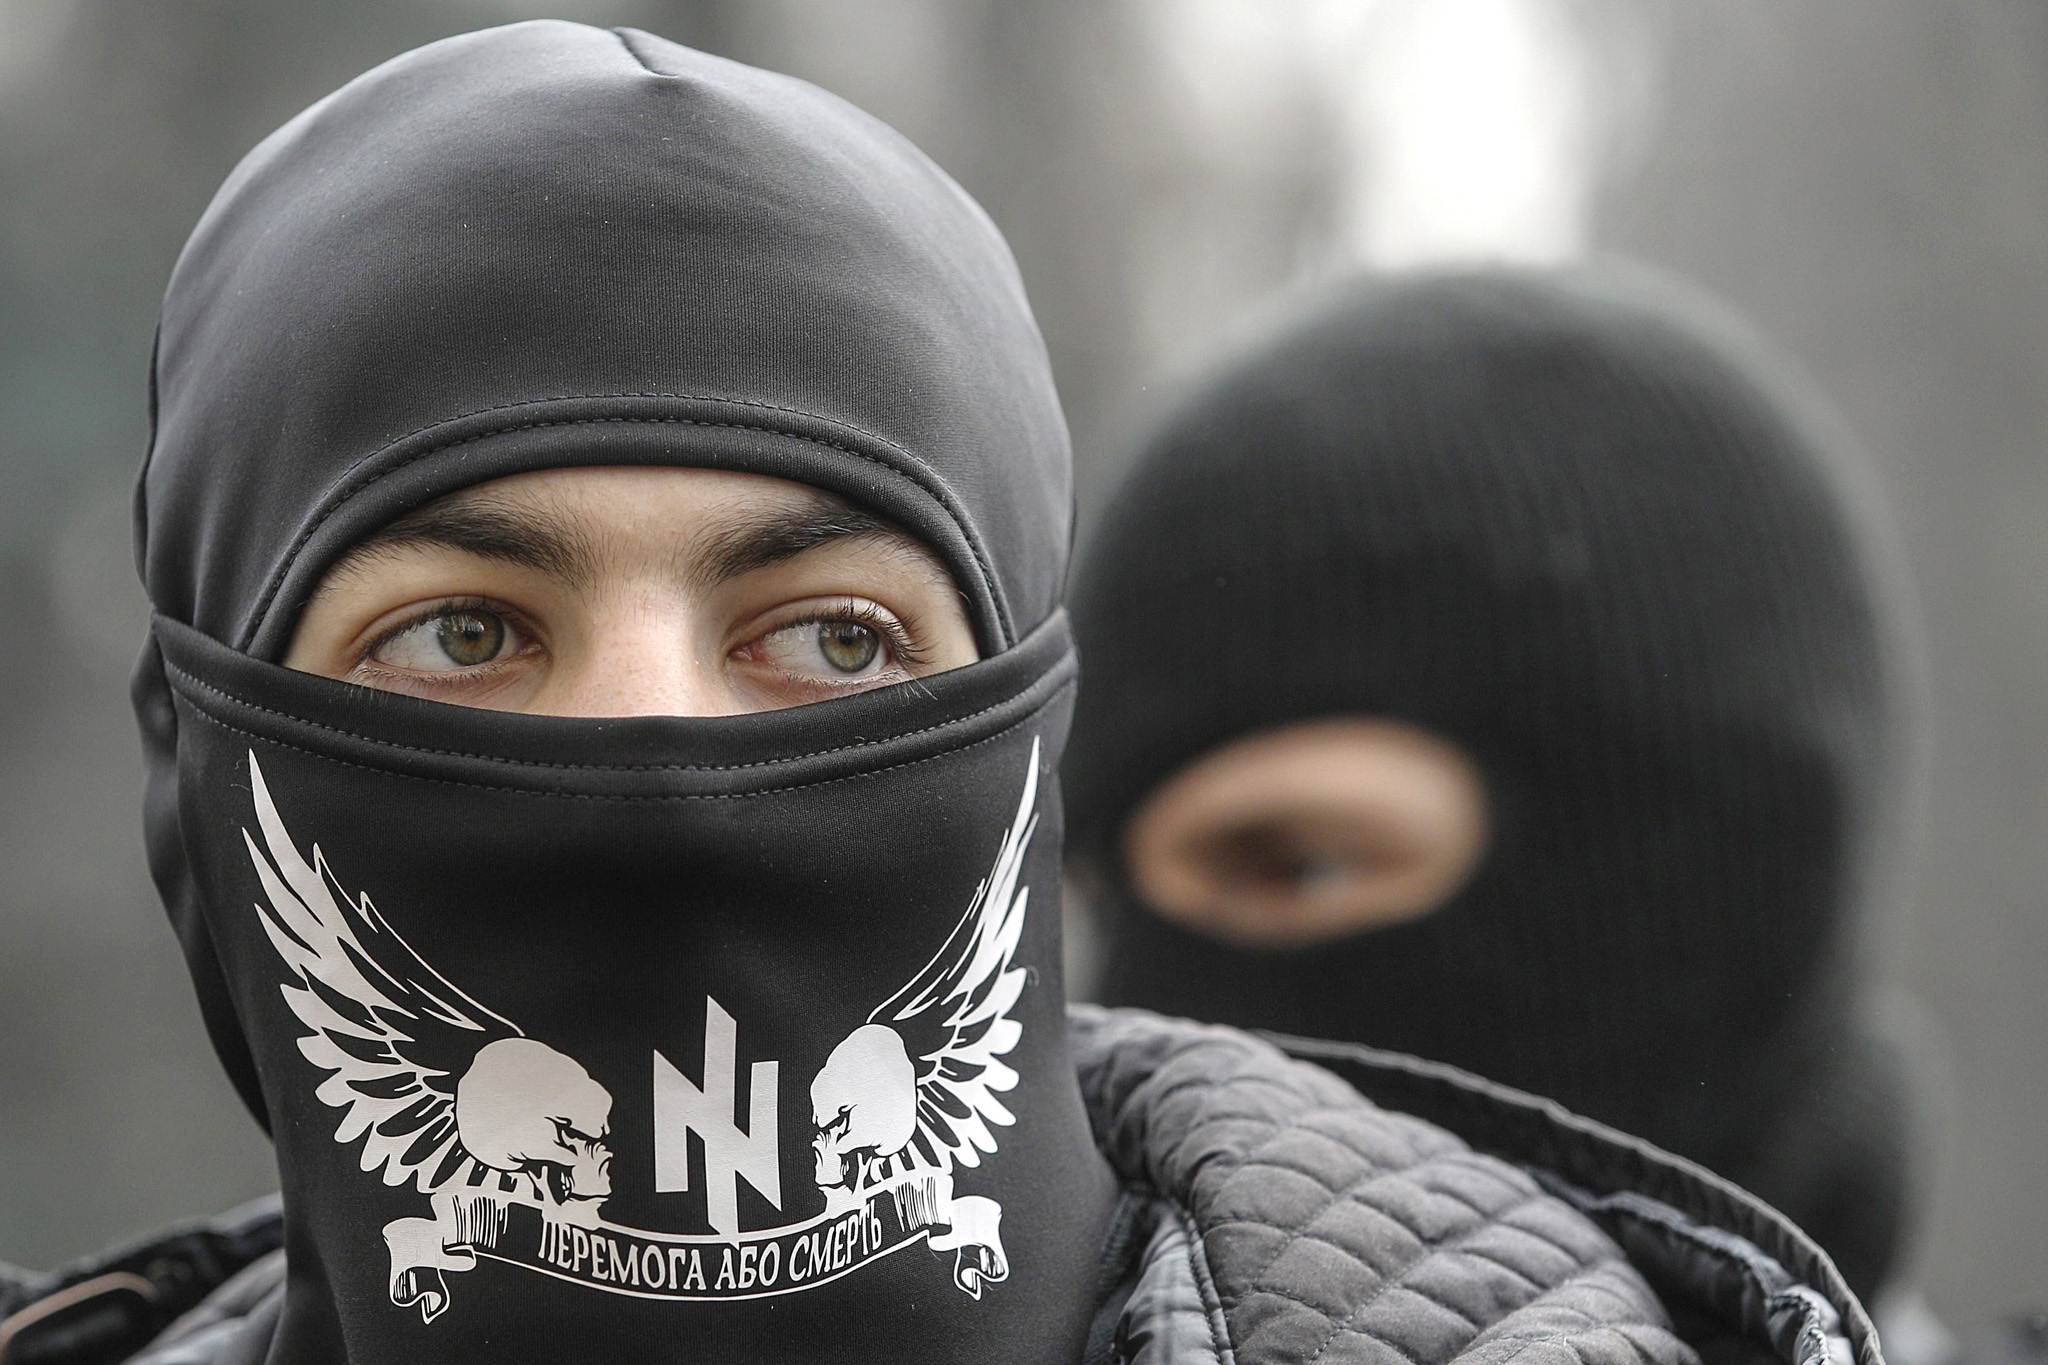 "Members of the Ukrainian far-right radical group Right Sector stand outside the parliament in Kiev...Members of the Ukrainian far-right radical group Right Sector stand outside the parliament in Kiev March 28, 2014. Ukrainian authorities carried out an inspection tour of Kiev's bomb shelters on Friday as lawmakers accused Russia of fomenting trouble in the Ukrainian capital after having annexed the Black Sea region of Crimea. The slogan on the face mask reads ""Victory or death"". REUTERS/Valentyn Ogirenko"